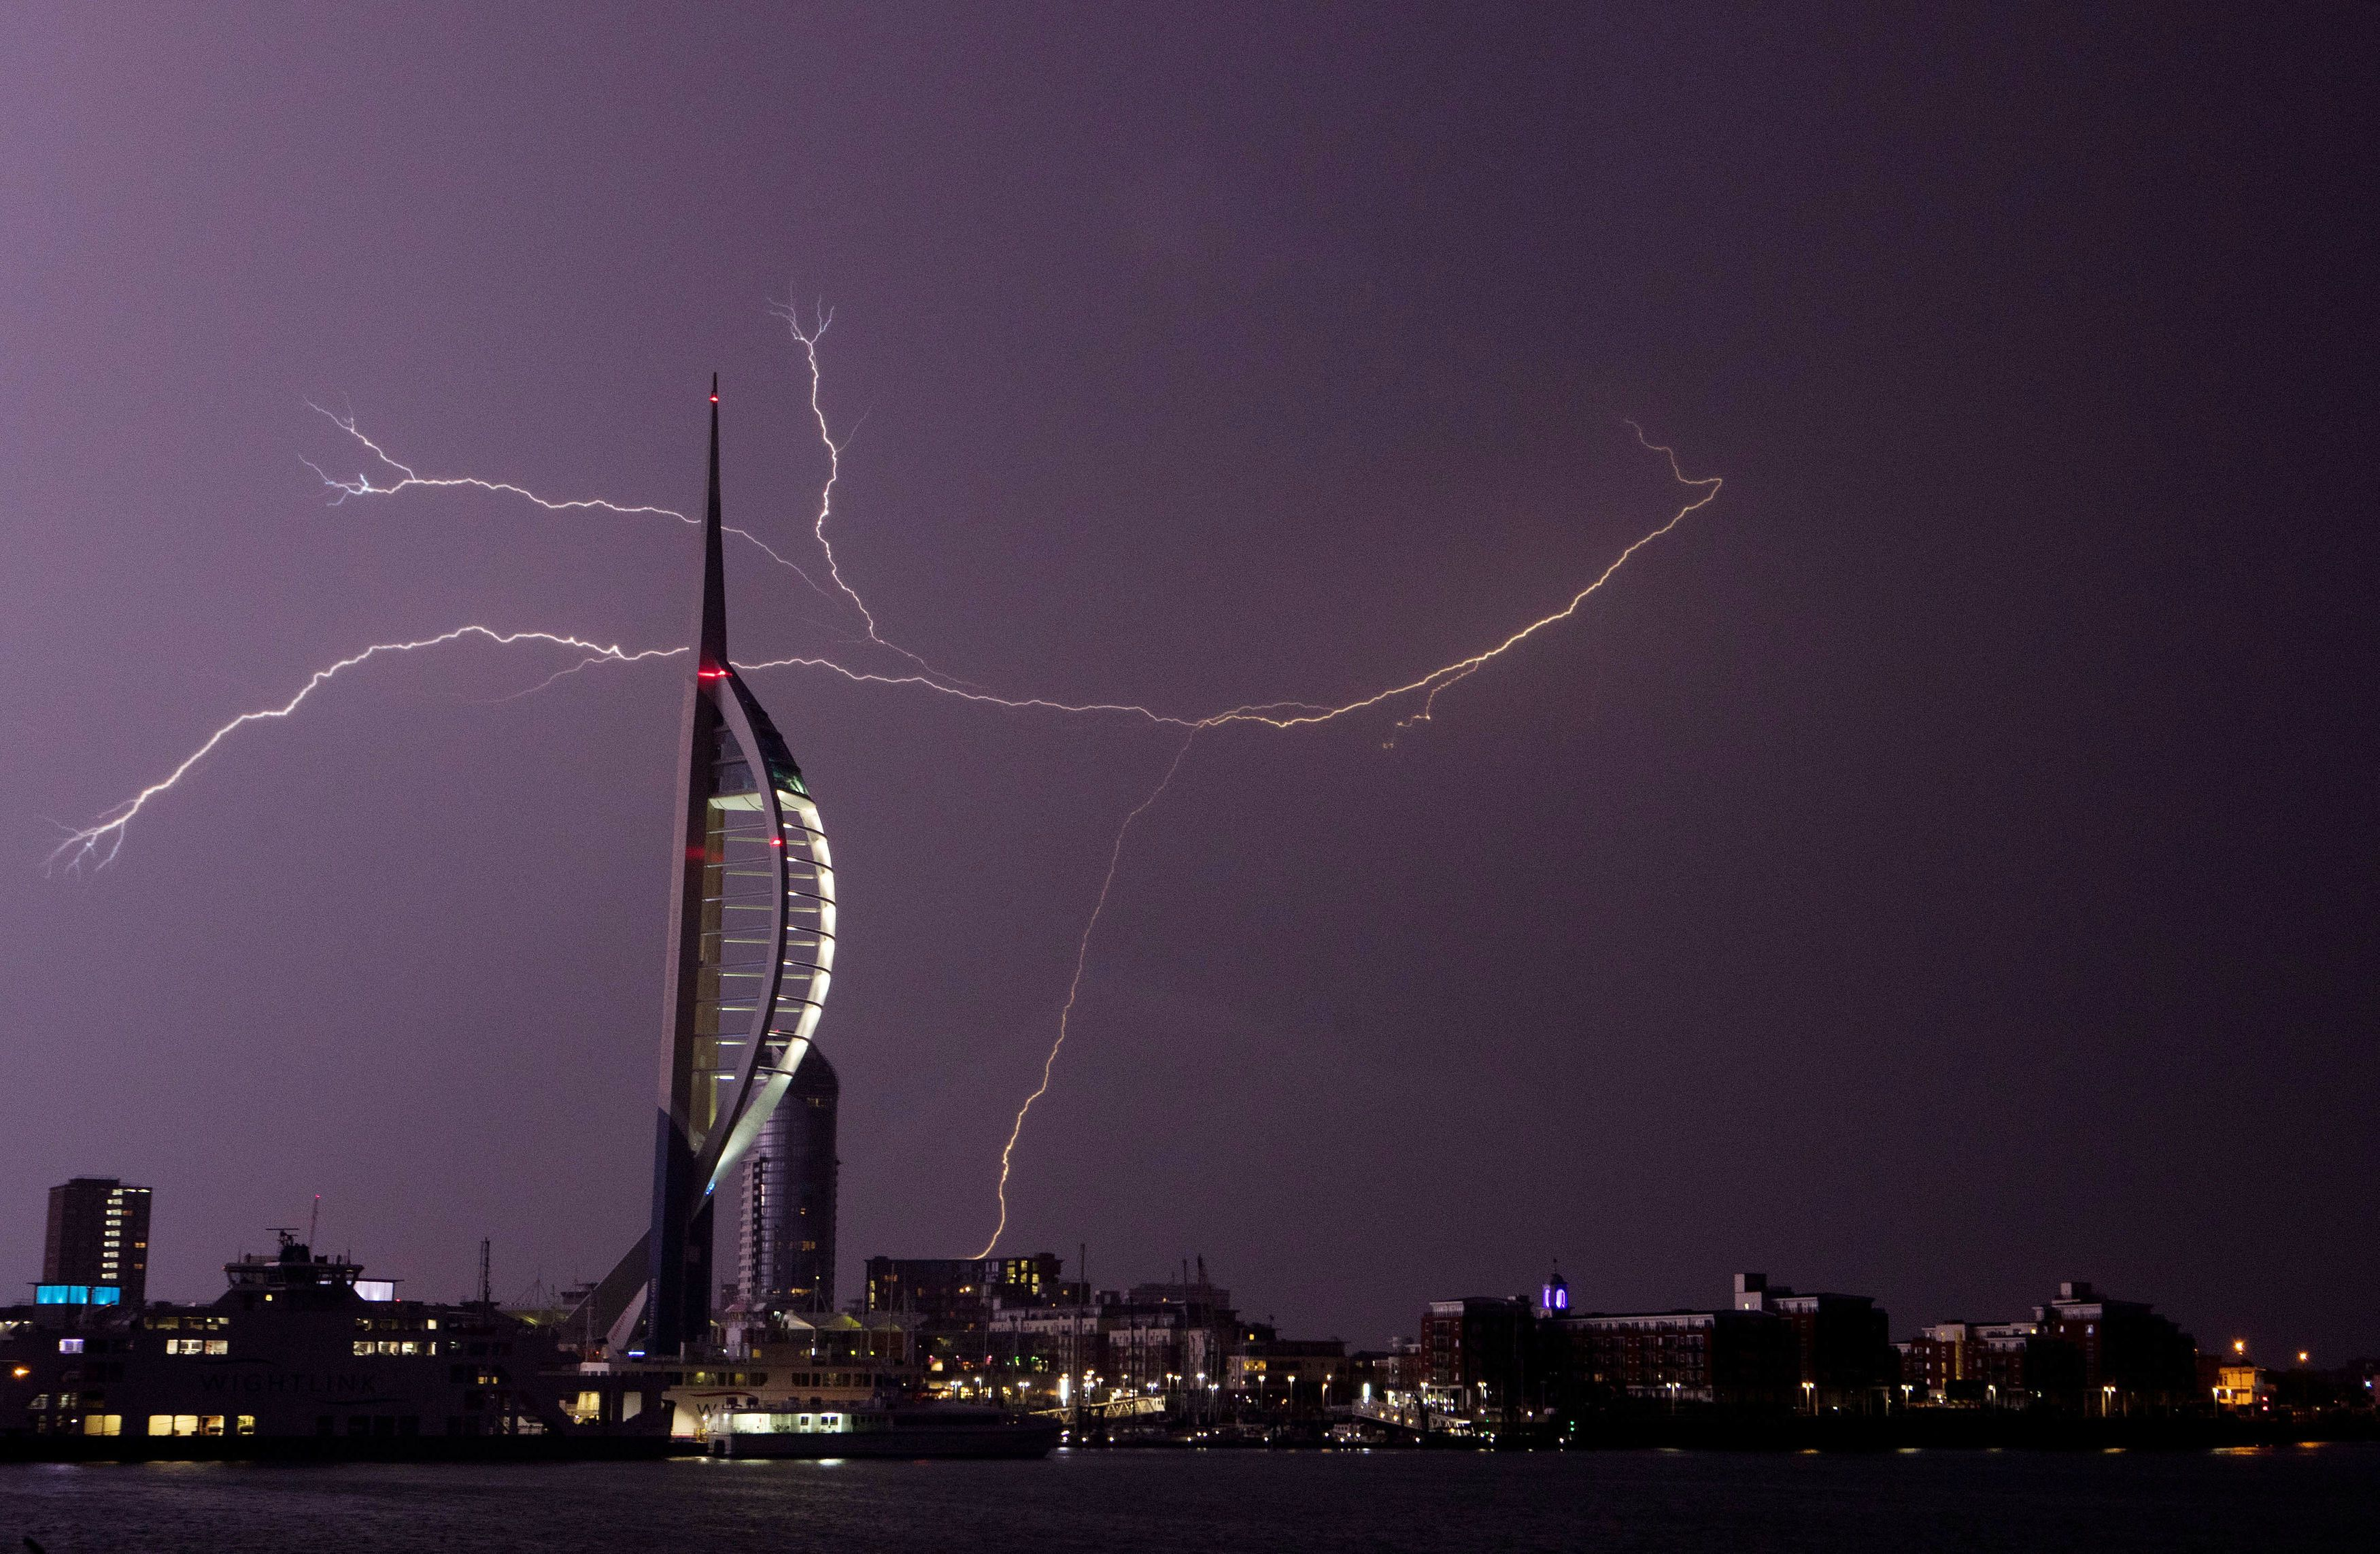 People Are Still Reeling From The Wild Lightning That Battered The